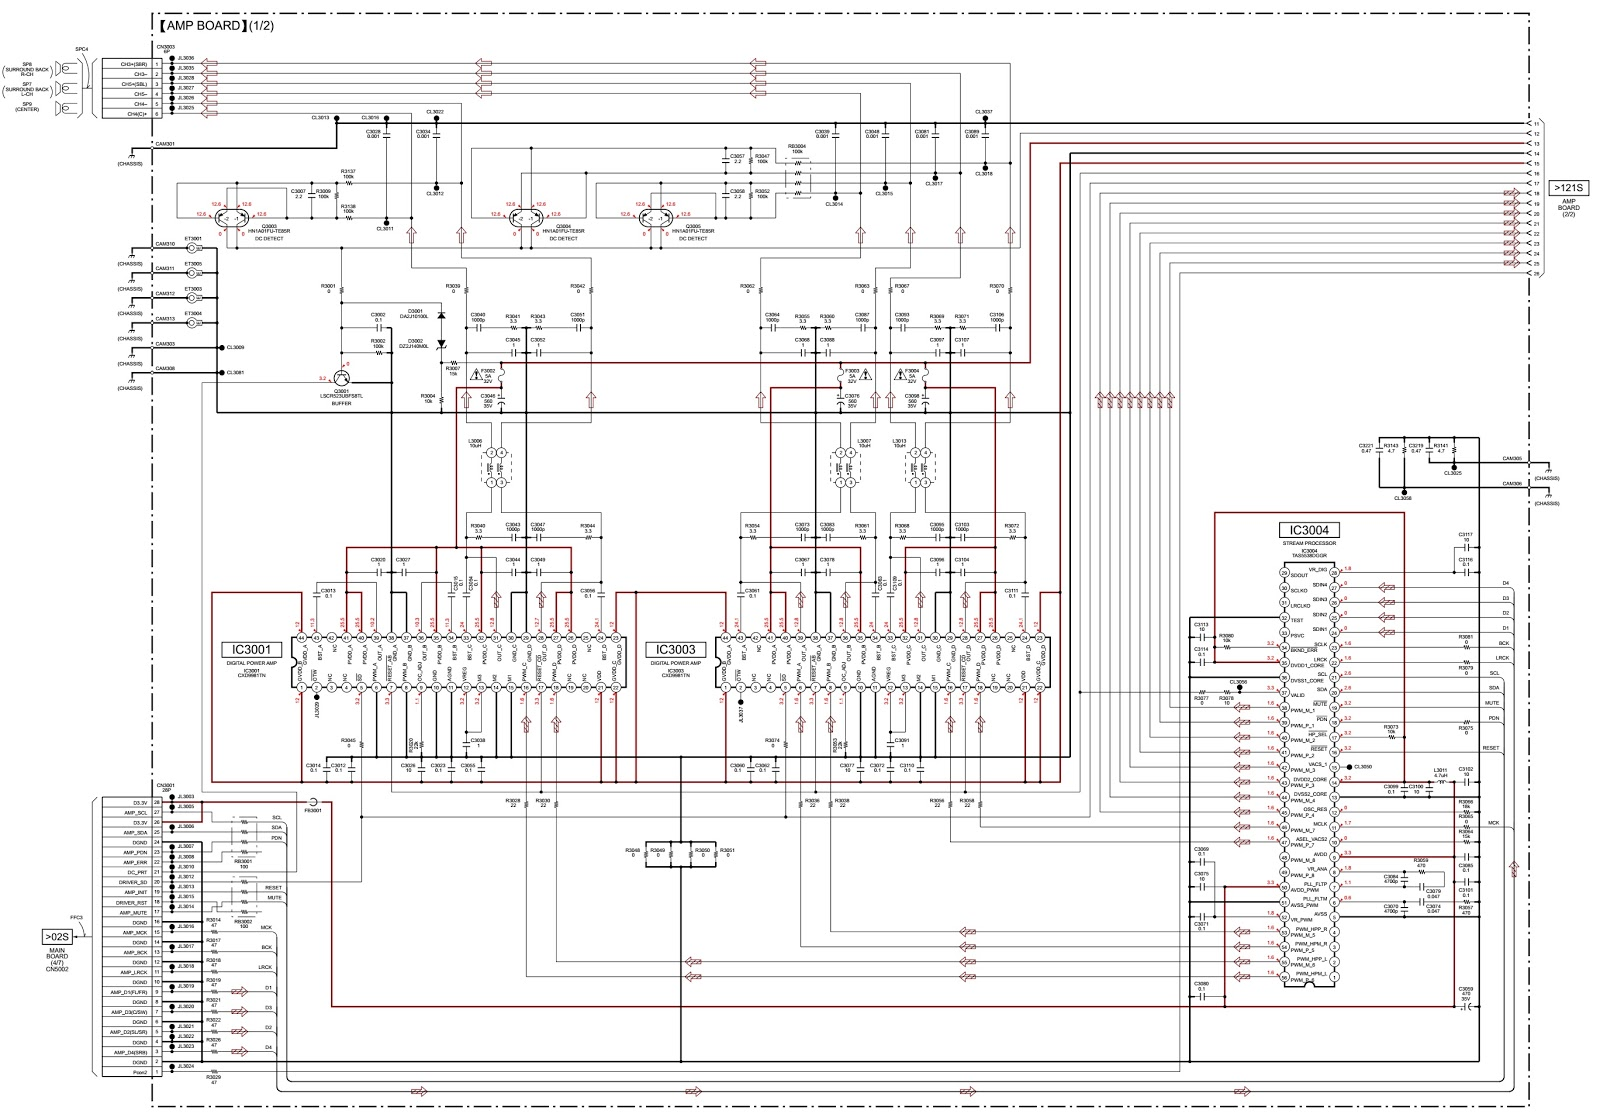 Sony Sound Bar Wiring Diagram Schematics Surround Free Download Ht St7 Example Electrical U2022